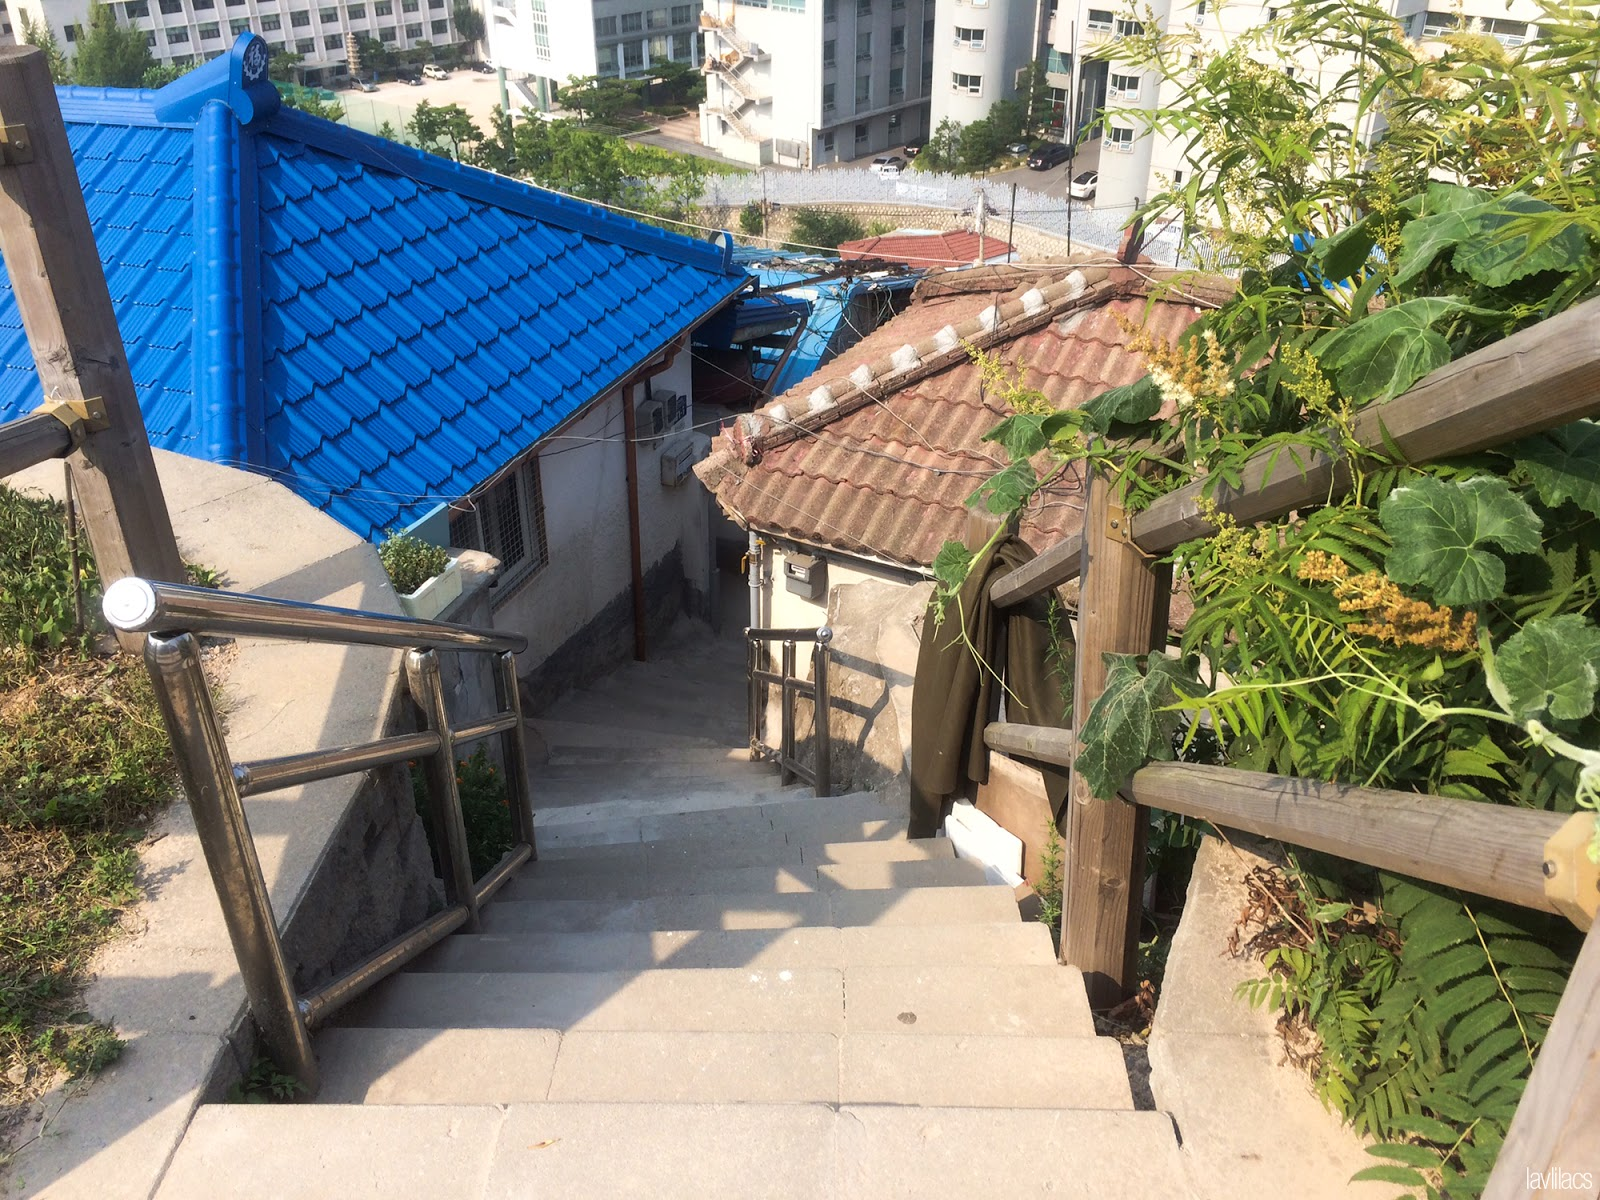 Seoul, Korea - Summer Study Abroad 2014 - Seoul Fortress Trail - Naksan Trail Course - Stairs to nearby residential neighborhood